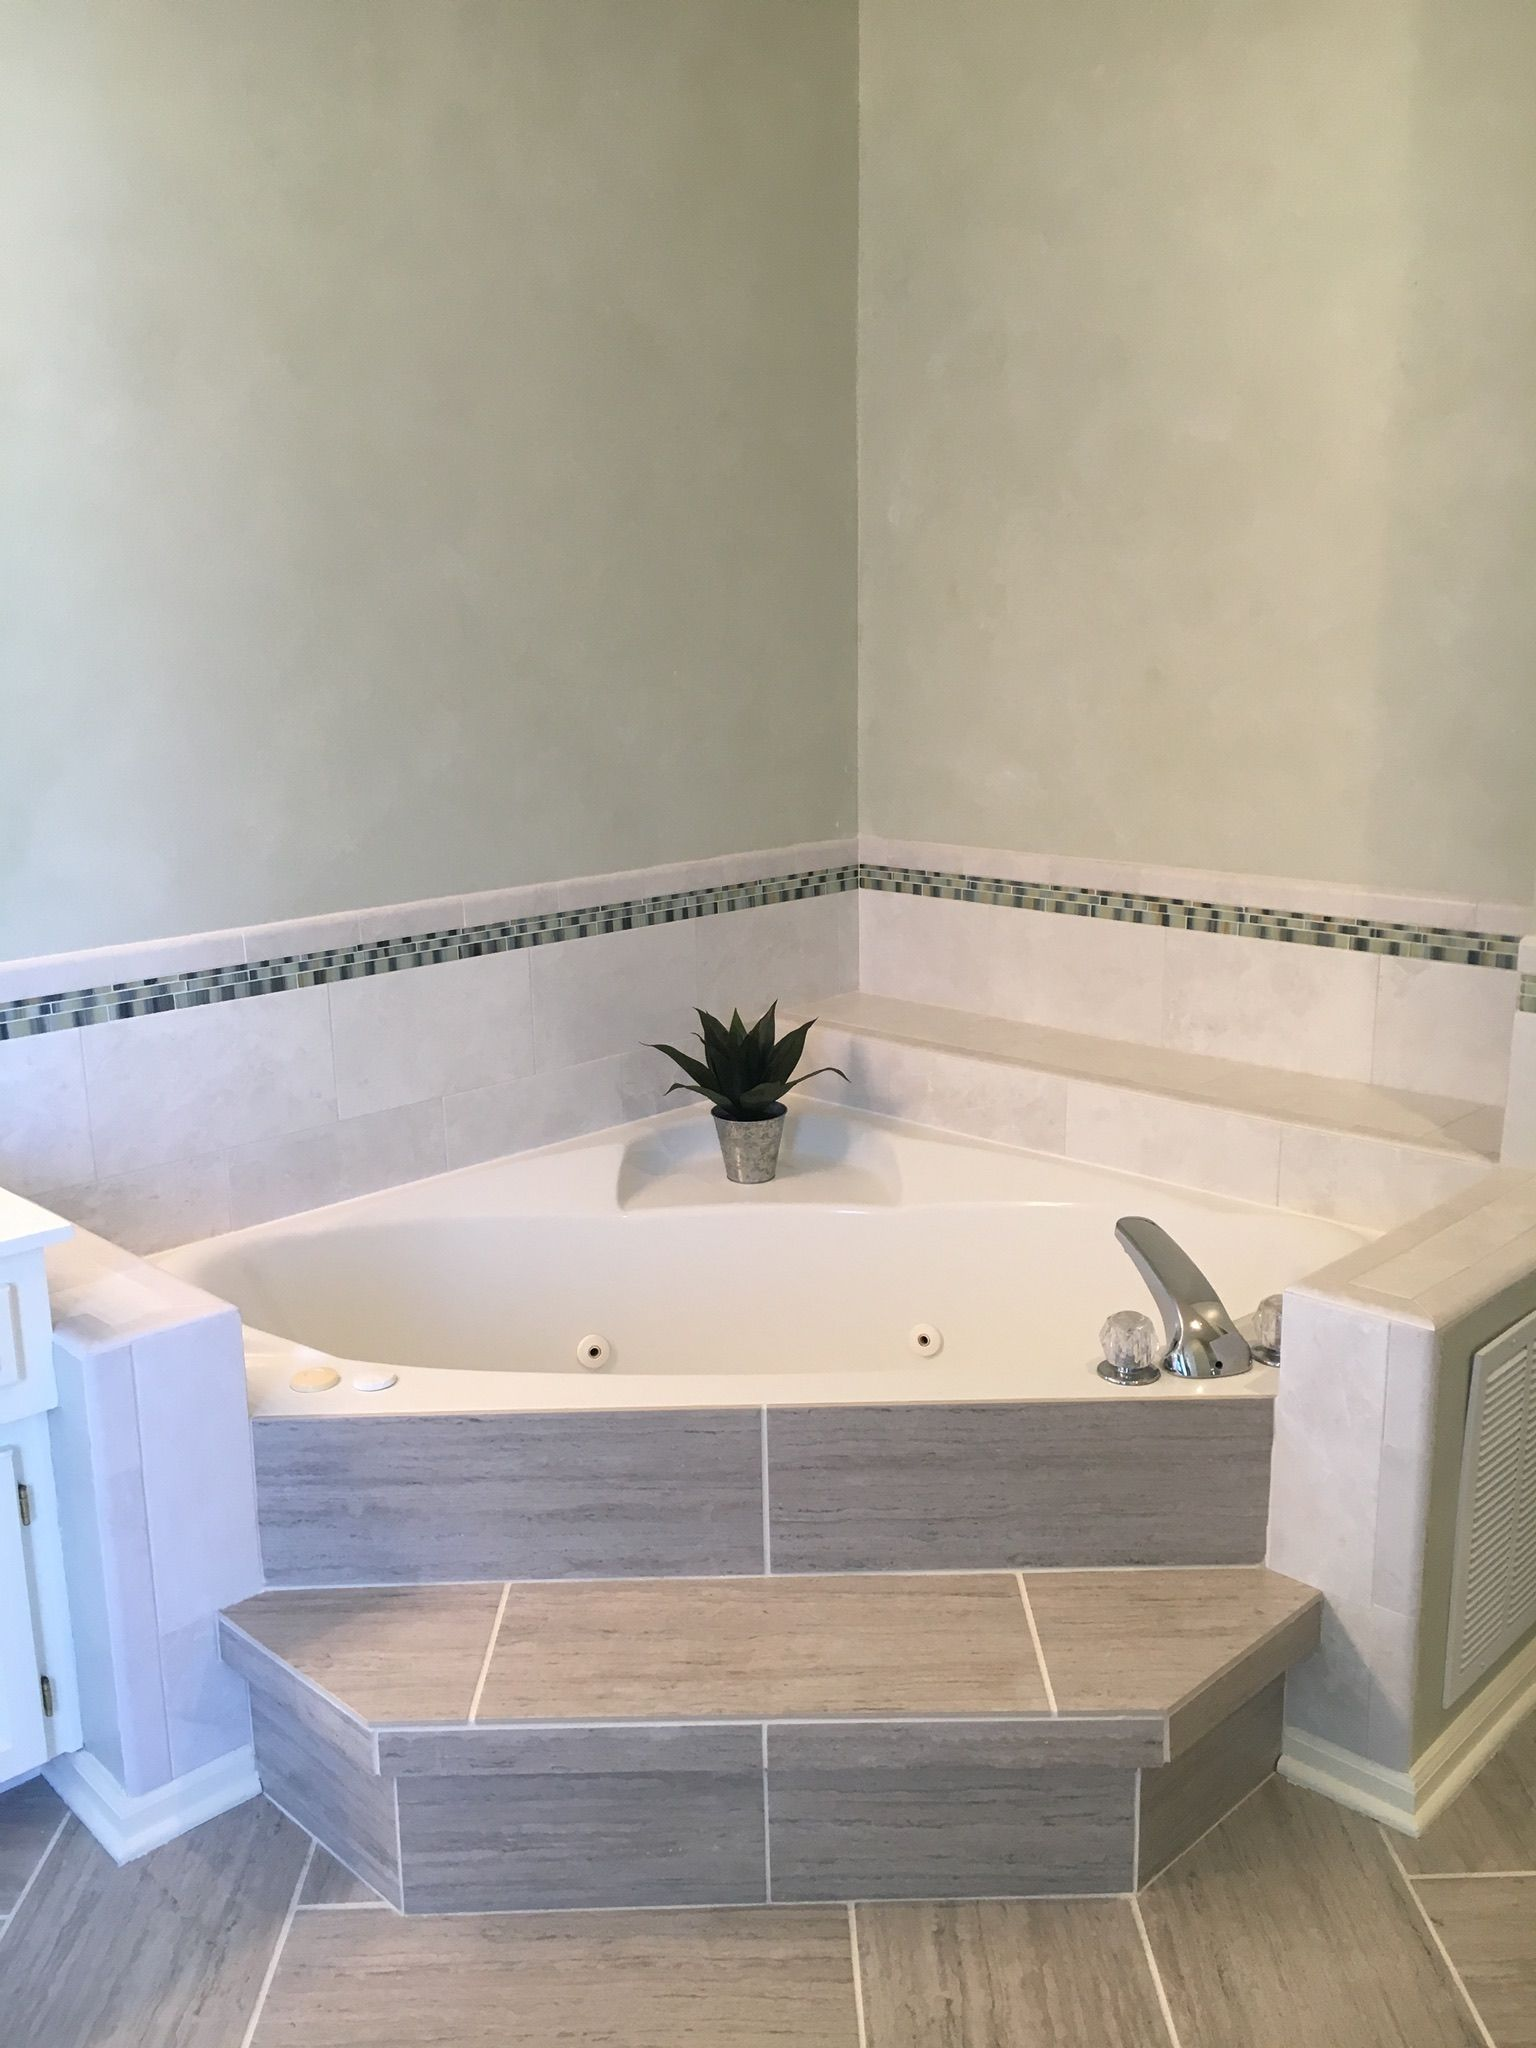 venzi corner kohler spa foot with drain archer in devonshire bathtub tubs ideas standard center whirlpool x american white tub imposing tovila ft oval